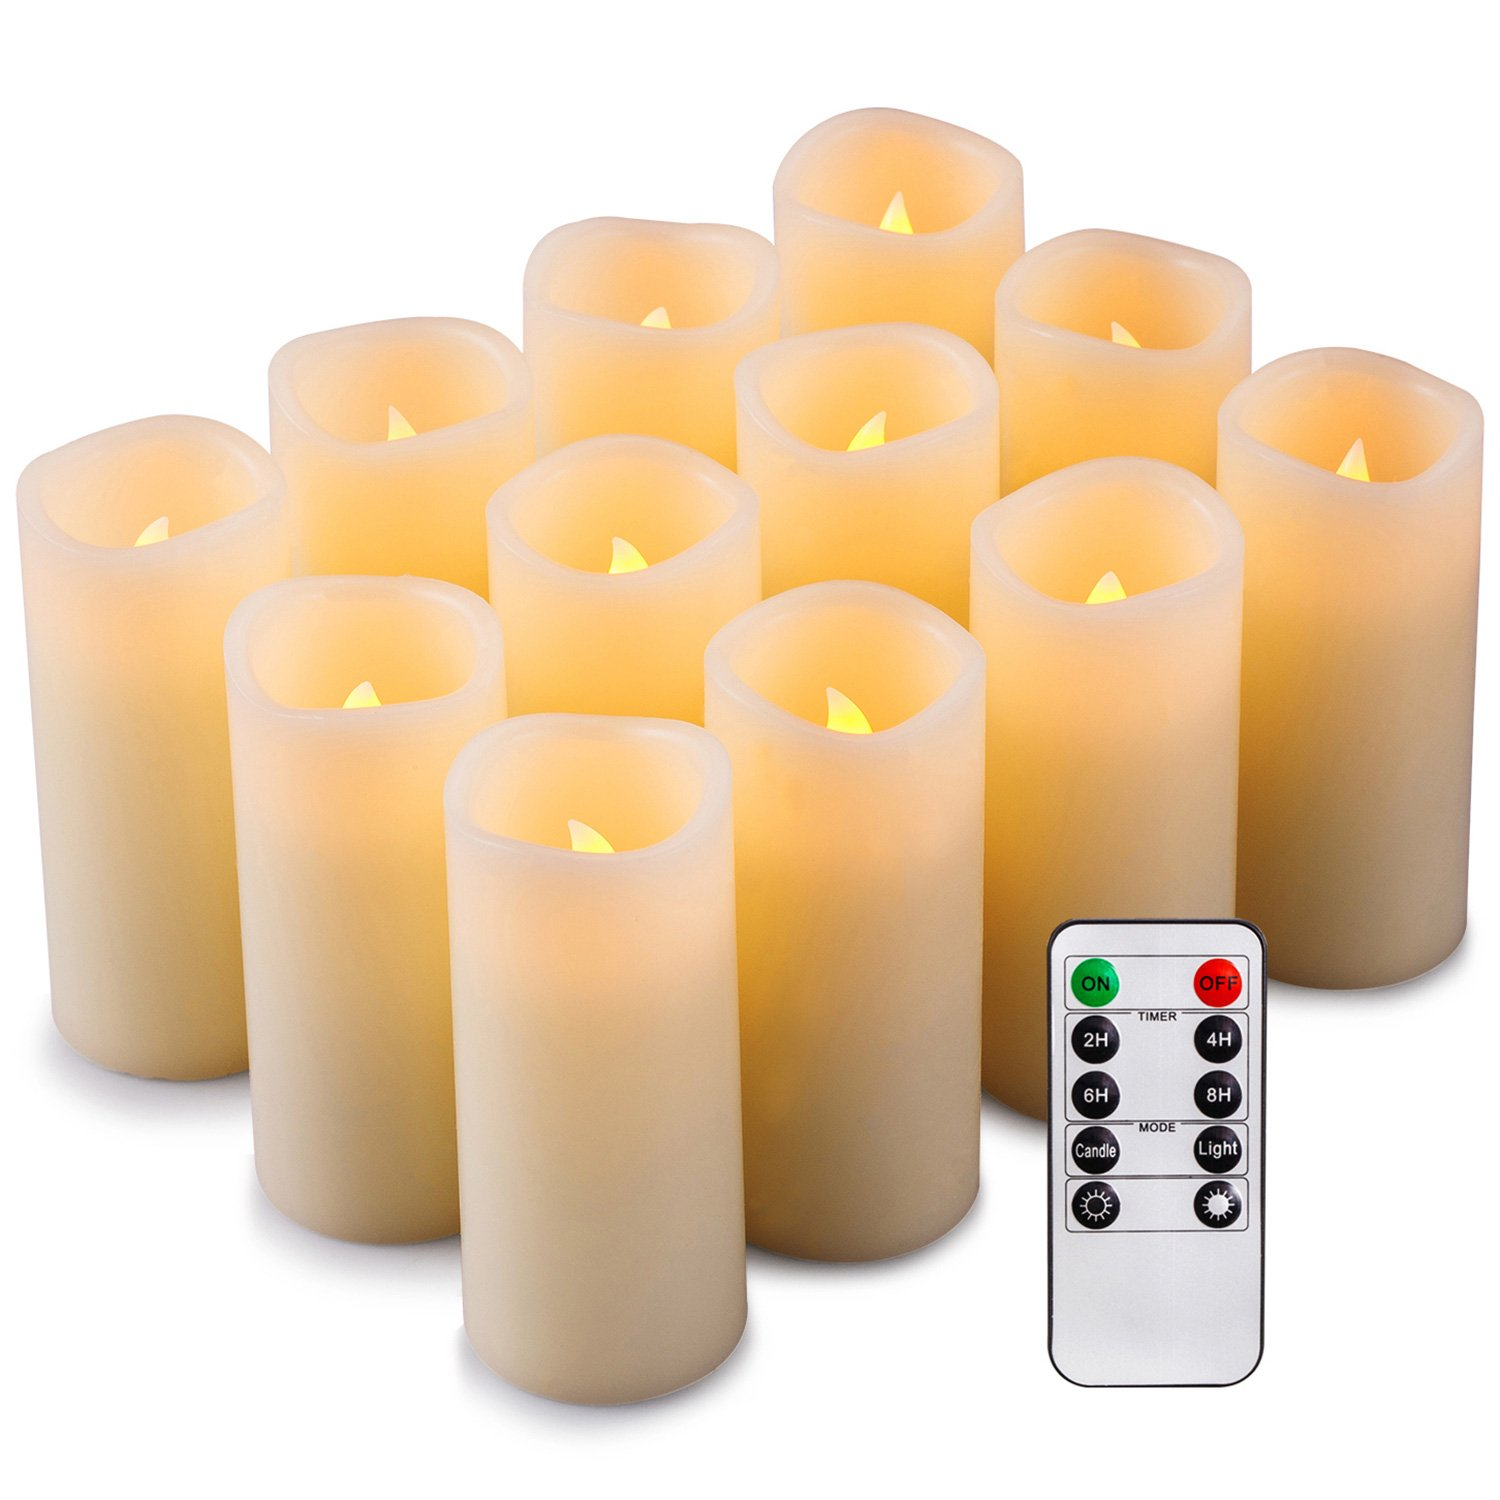 Enpornk Set of 12 Flameless Candles Battery Operated LED Pillar Real Wax Flickering Electric Unscented Candles with Remote Control Cycling 24 Hours Timer, Ivory Color by Enpornk